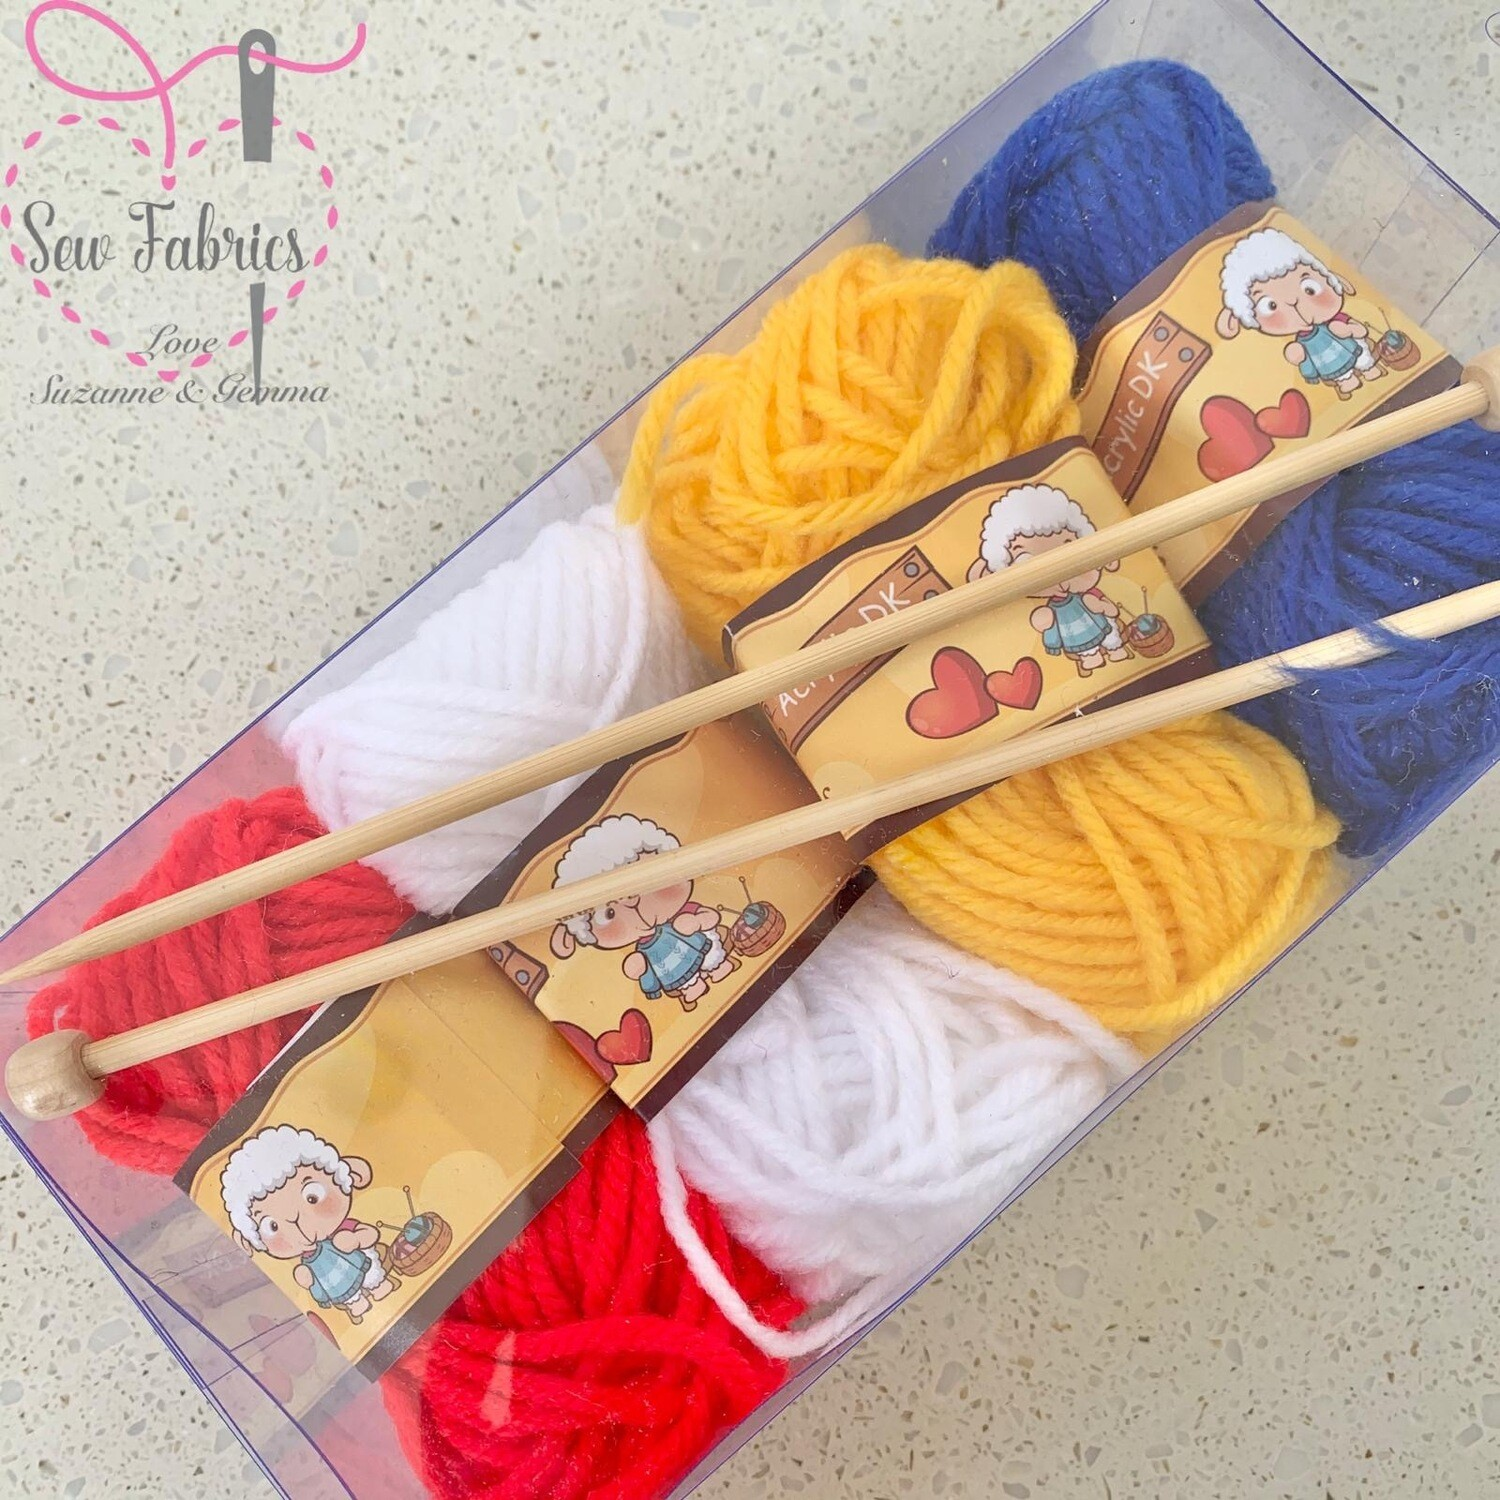 Whitecroft Children's Knitting Kit, 4 Balls of Wool and Knitting Needles